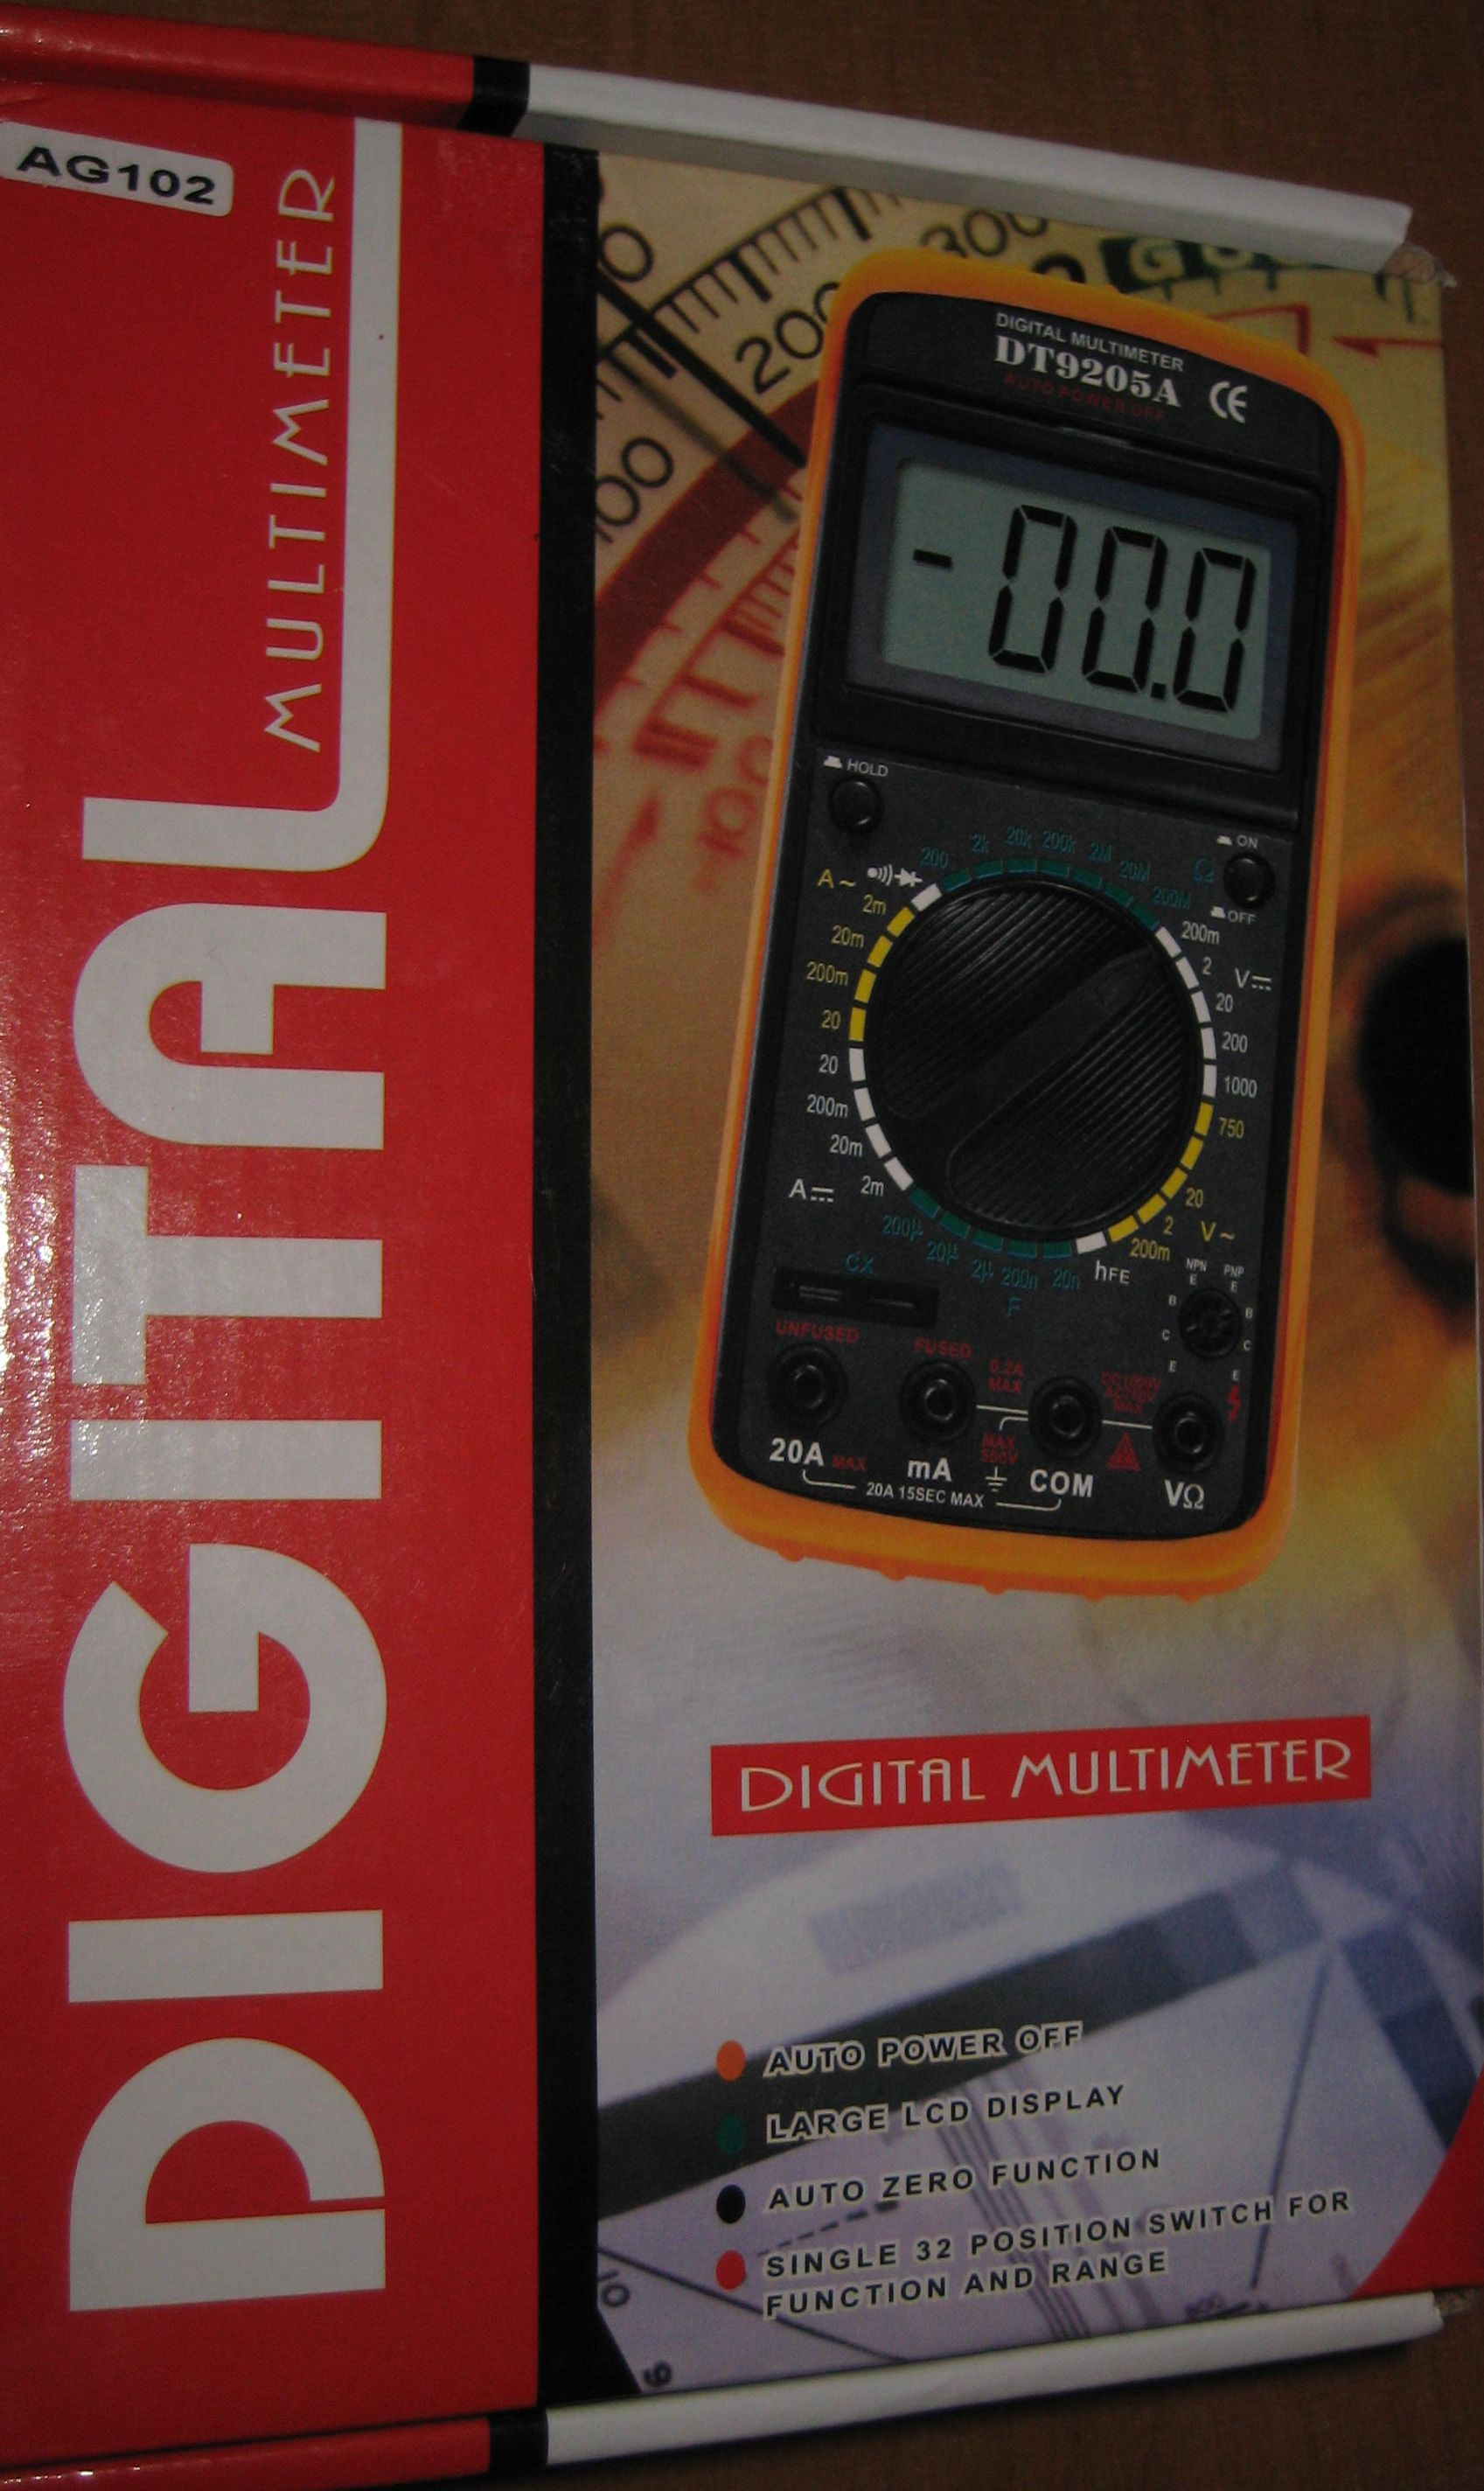 Digital Multimeter DT9205A AG102 instrukcja [ENG]